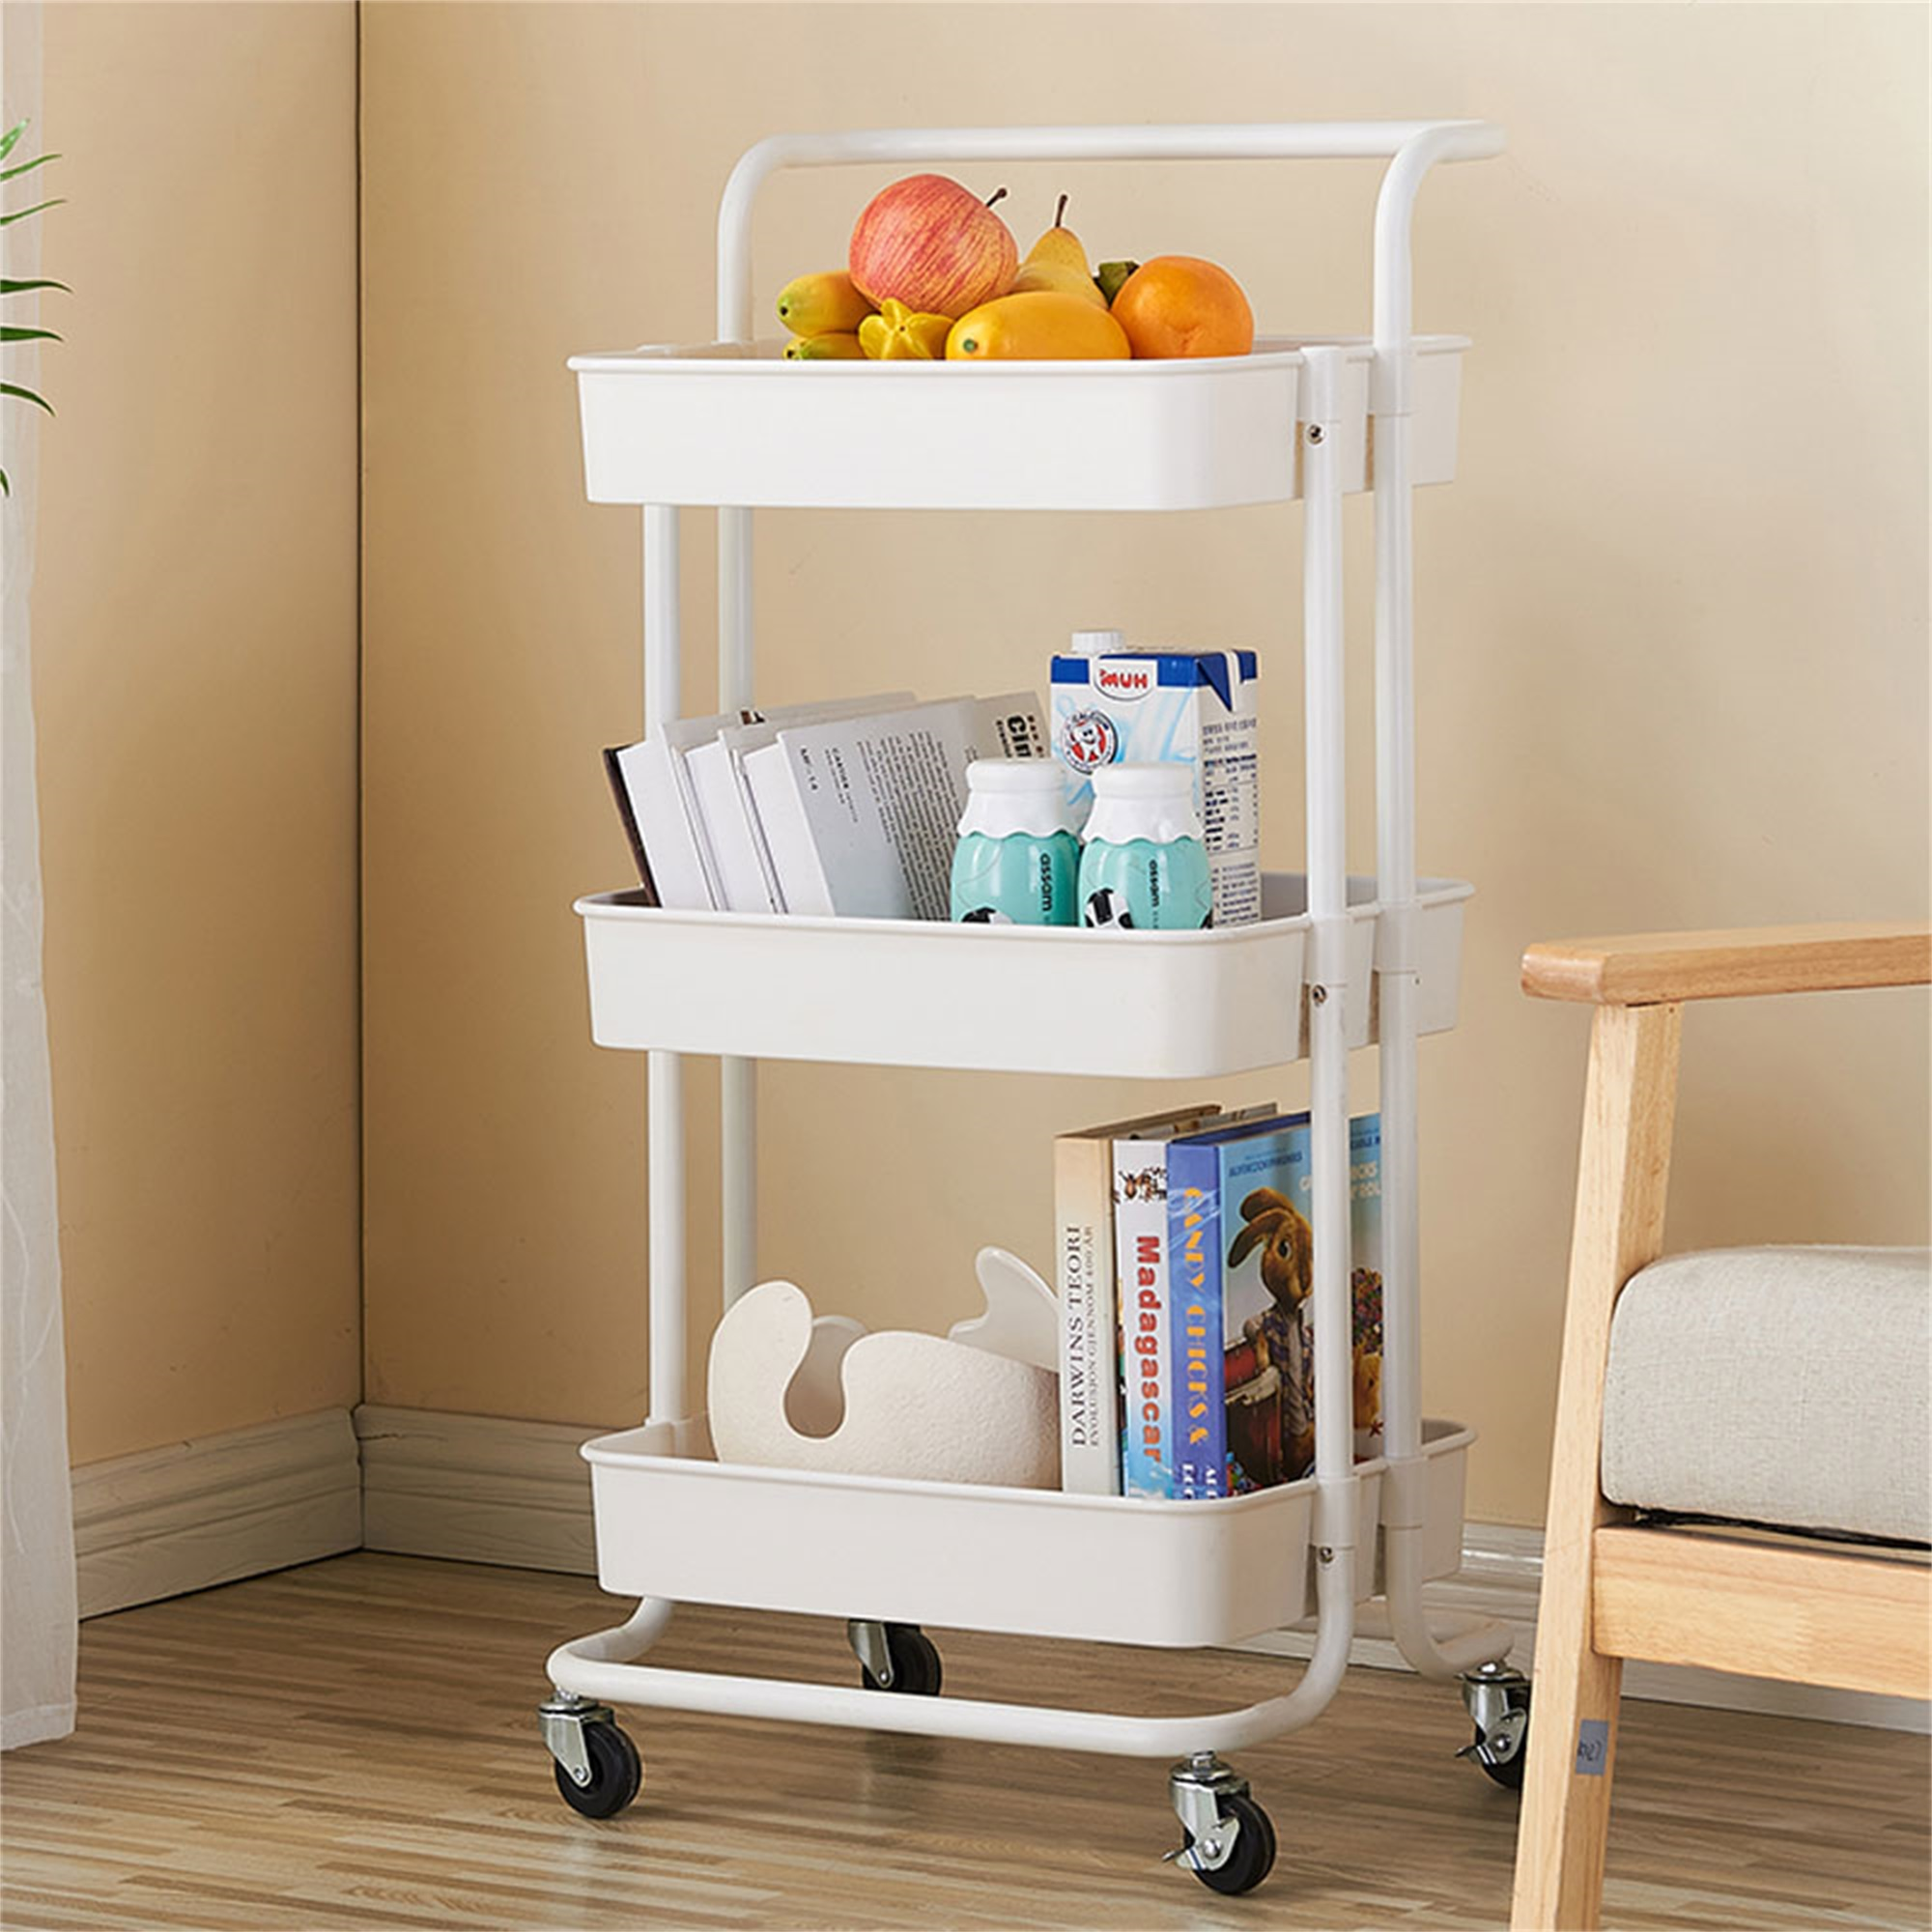 Binpure Utility Cart Three Layer Storage Rack Commodity Shelf With Wheels And Handrail For Kitchen Bathroom White Walmart Com Walmart Com